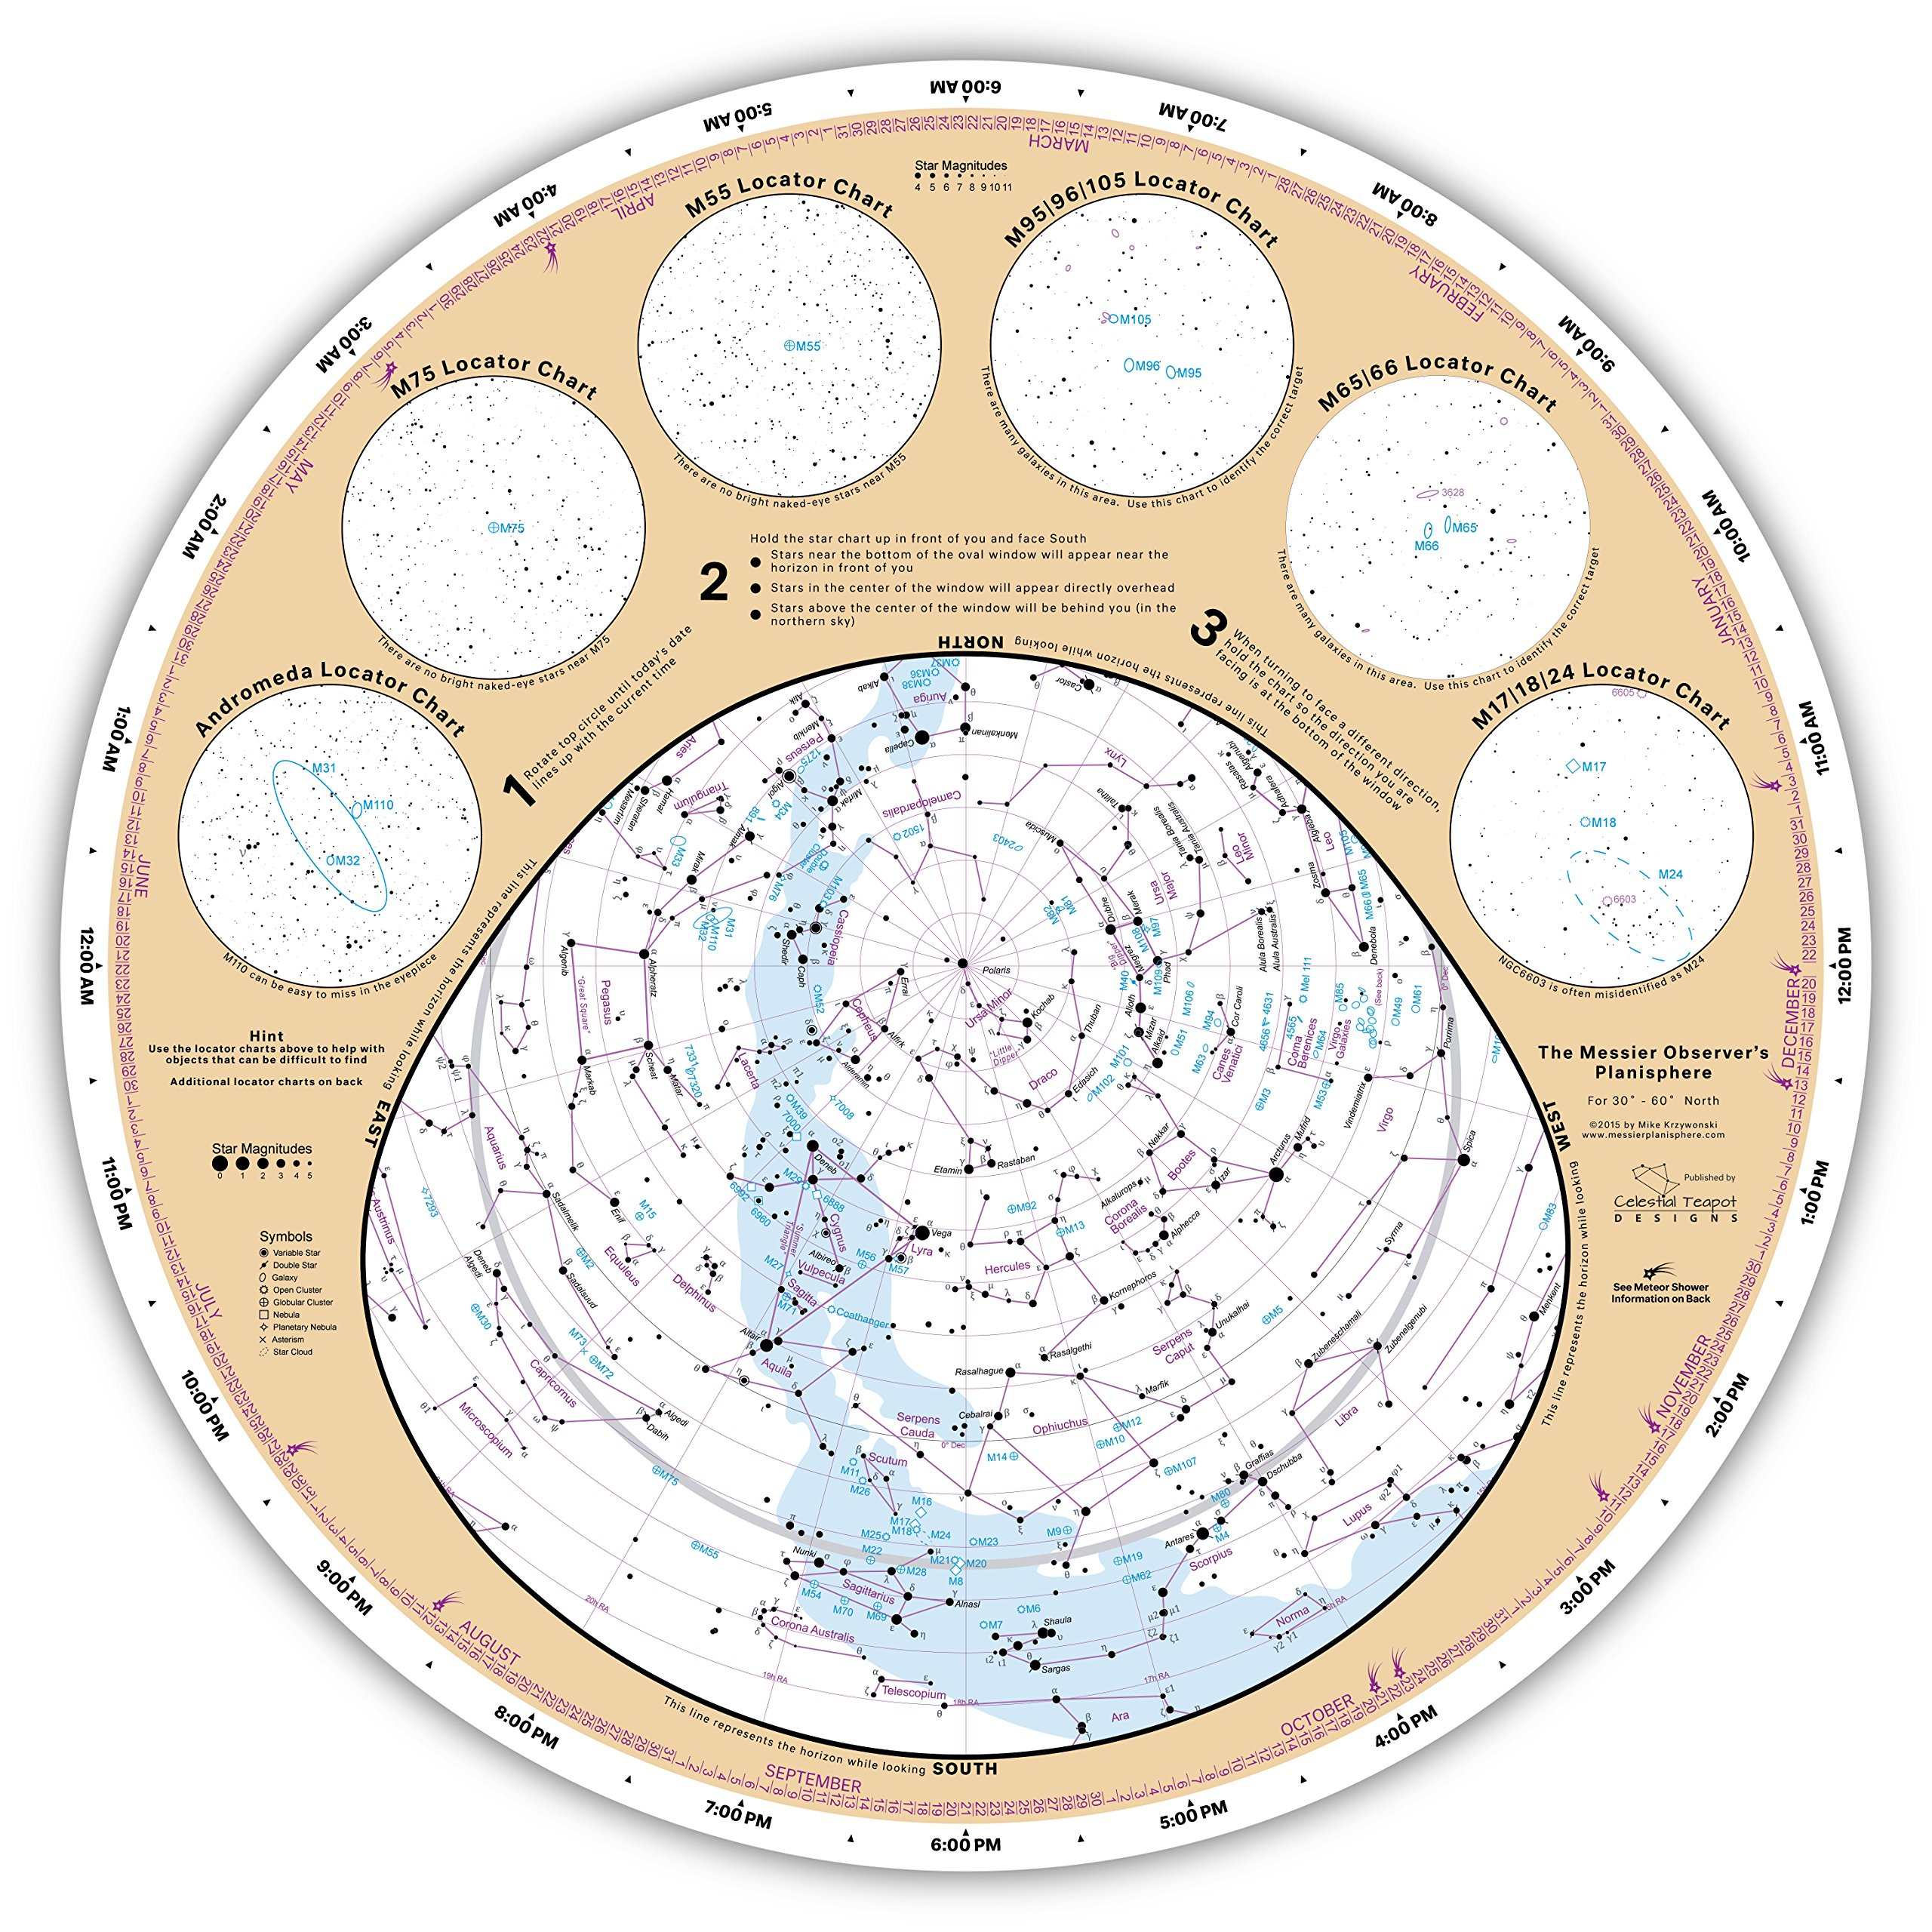 image about Planisphere Printable identified as Messier Observers Planisphere: Mike Krzywonski